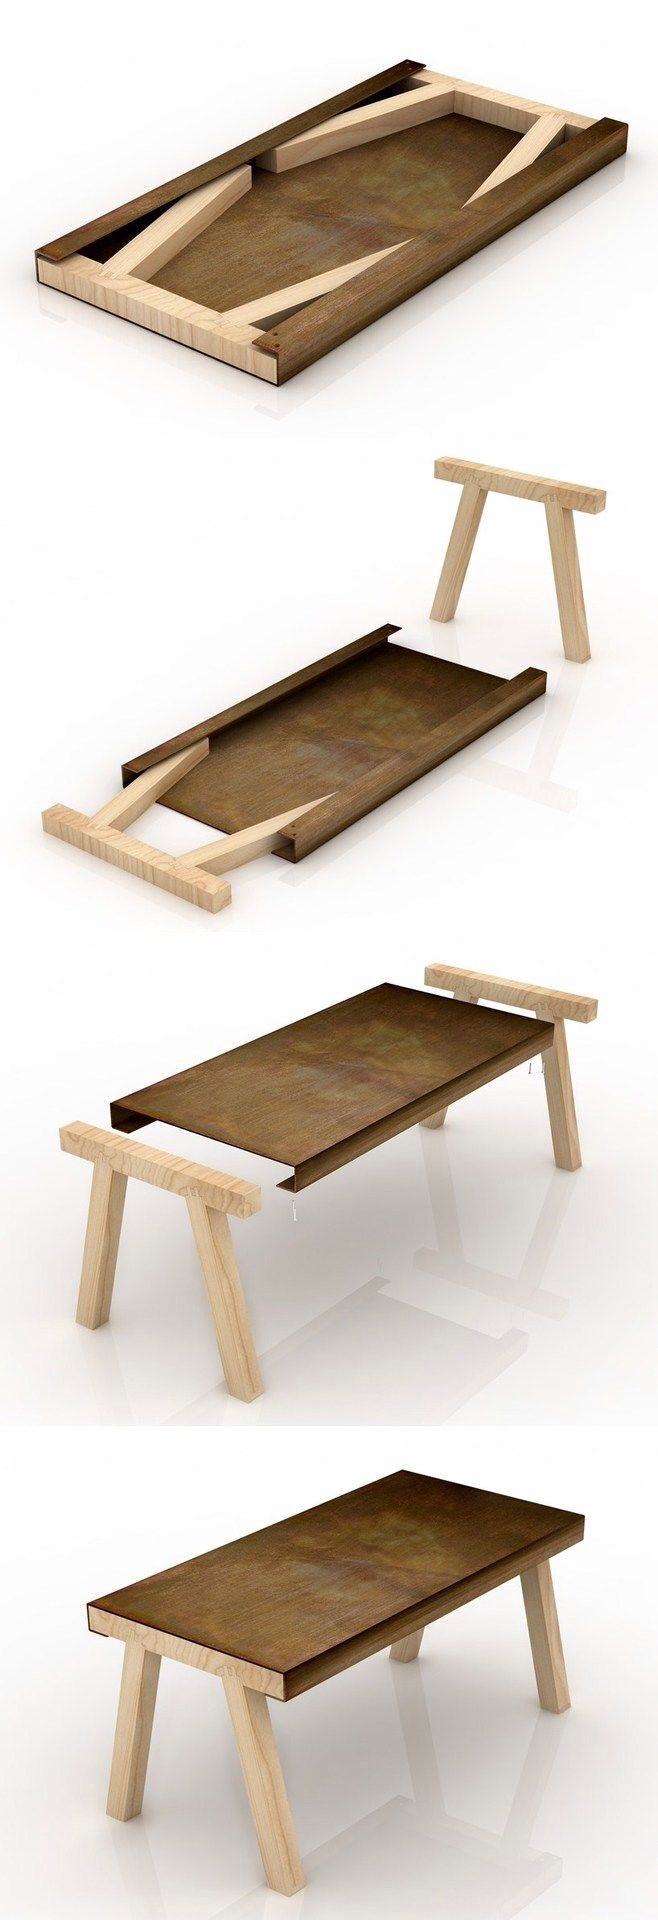 Diy overbed table - Il Tavolo Mastro Studio Gumdesign This Is Such A Cool Idea Maybe Barn Wood For Outside Extra Table Or The Camper